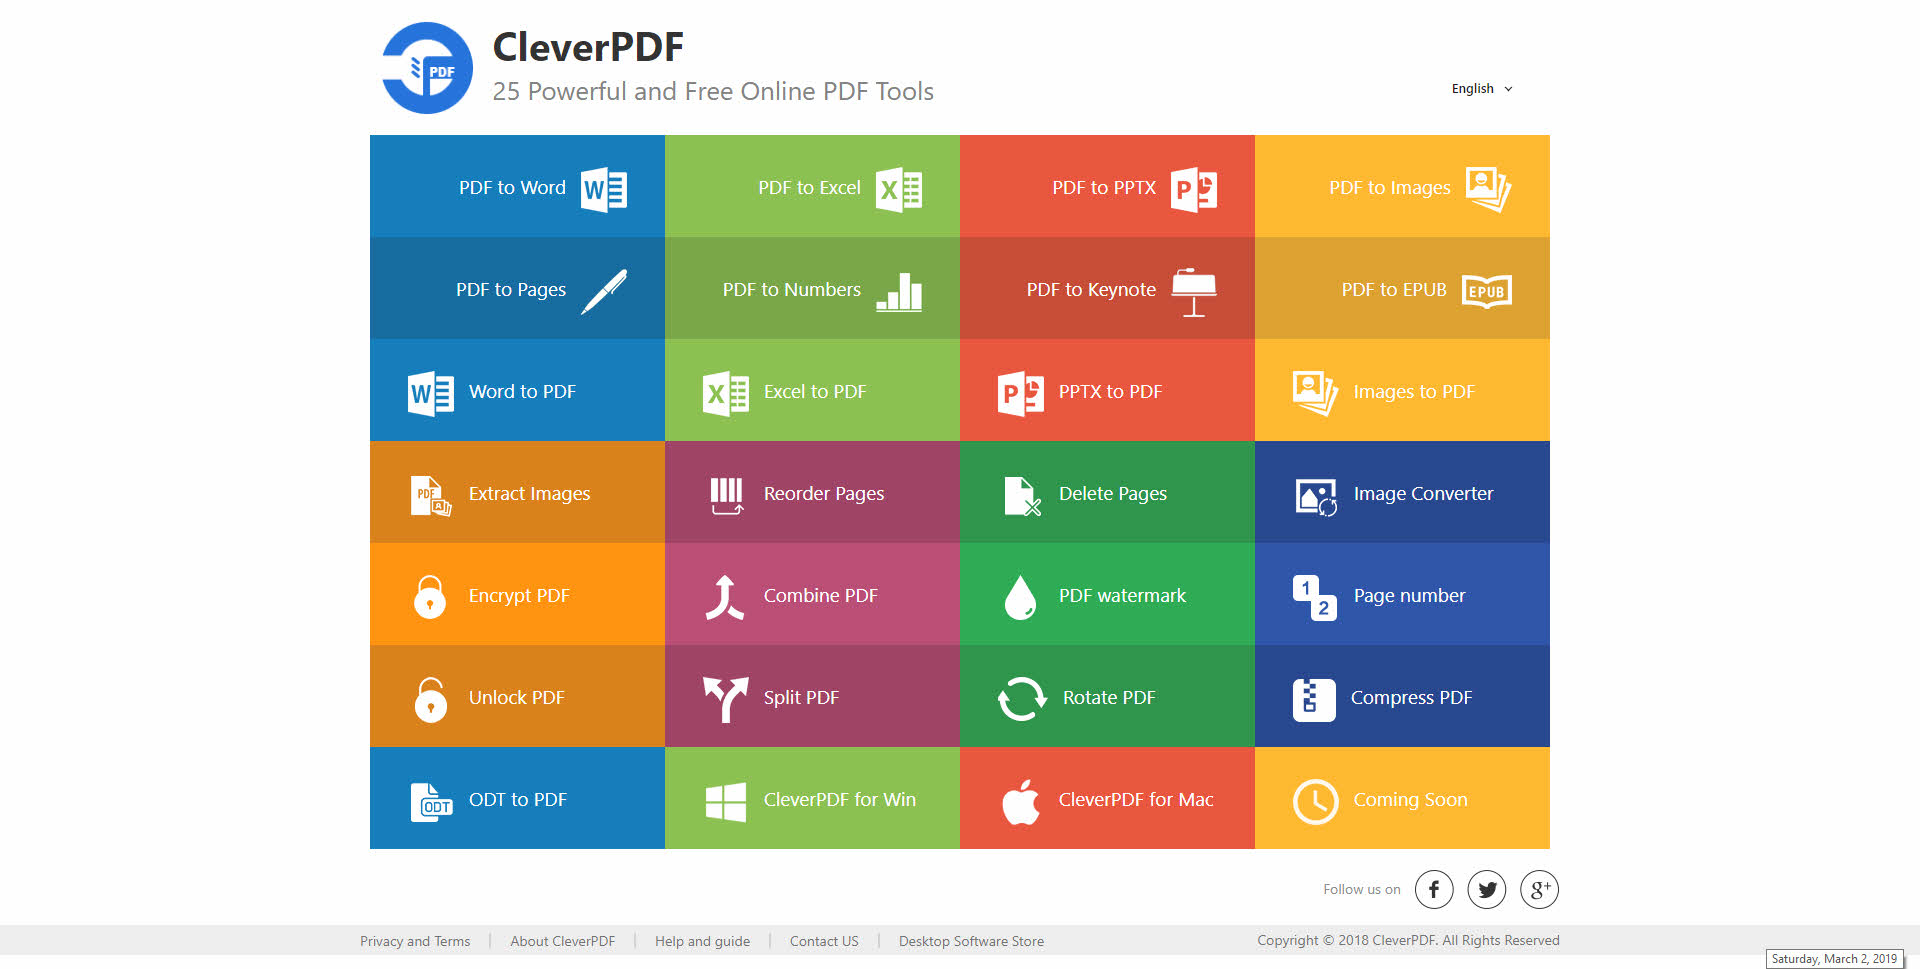 Image result for cleverpdf mac screenshot